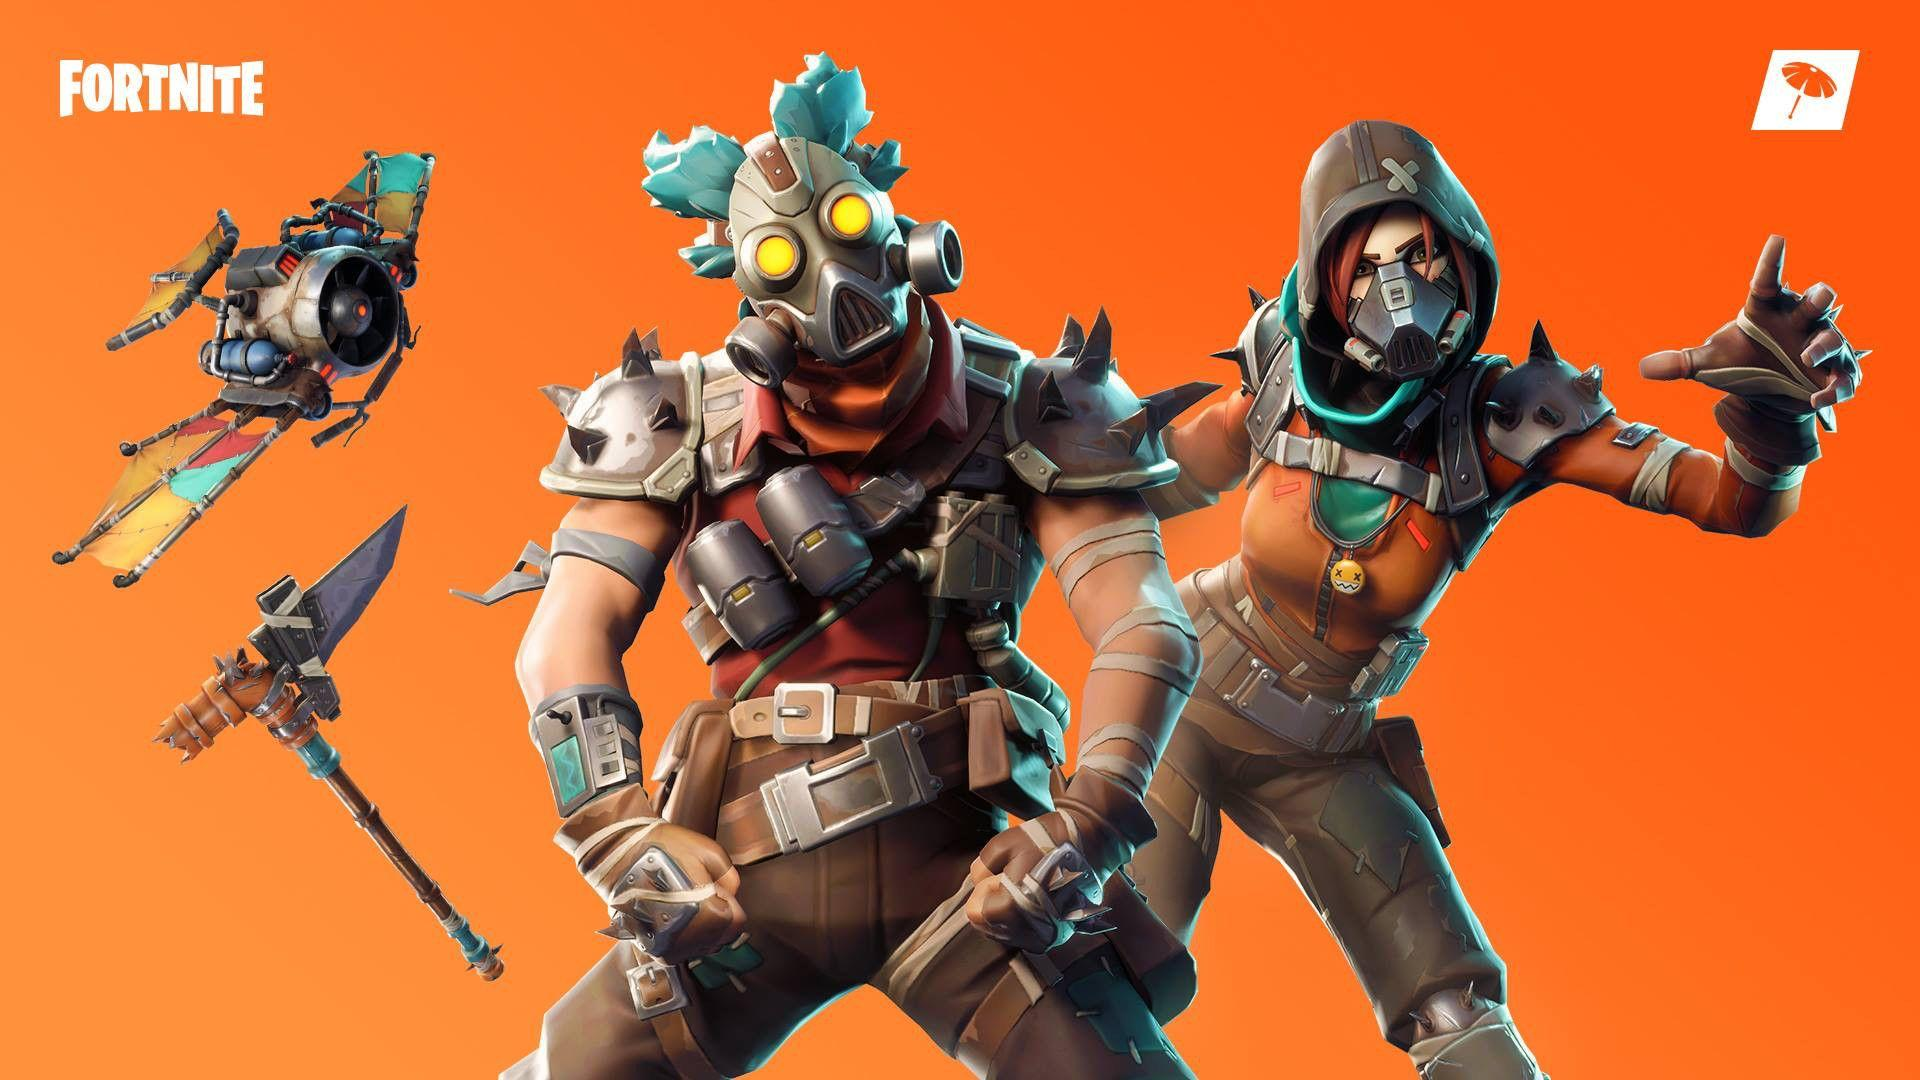 New Ruckus and Mayhem Outfits - Fortnite Wallpaper by Rabcat #4383 ...